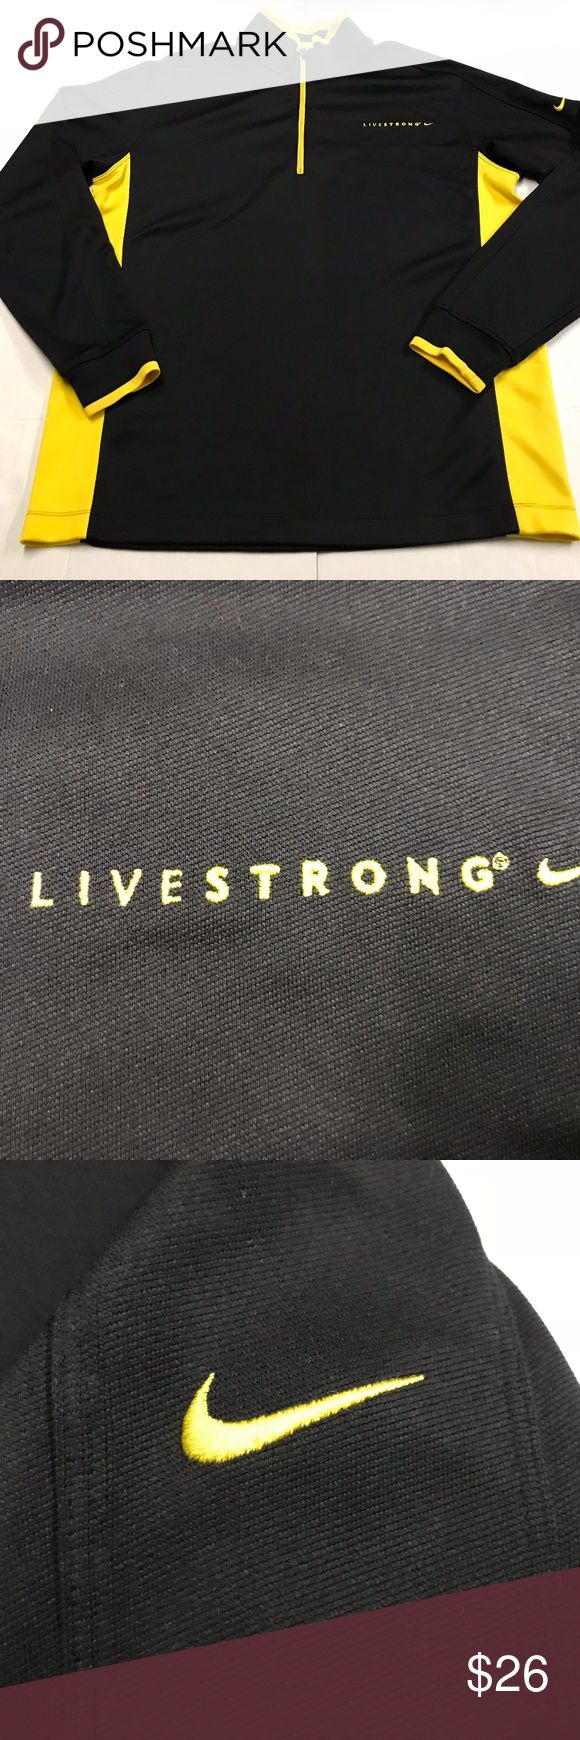 Nike LiveStrong 1/4 zip Nike Fit/Dri Fit Pullover APPROXIMATE MEASUREMENTS LAYING FLAT IN INCHES:  width:23.5 length:29.5  small place with a couple snags can be seen in the last picture Nike Jackets & Coats Lightweight & Shirt Jackets